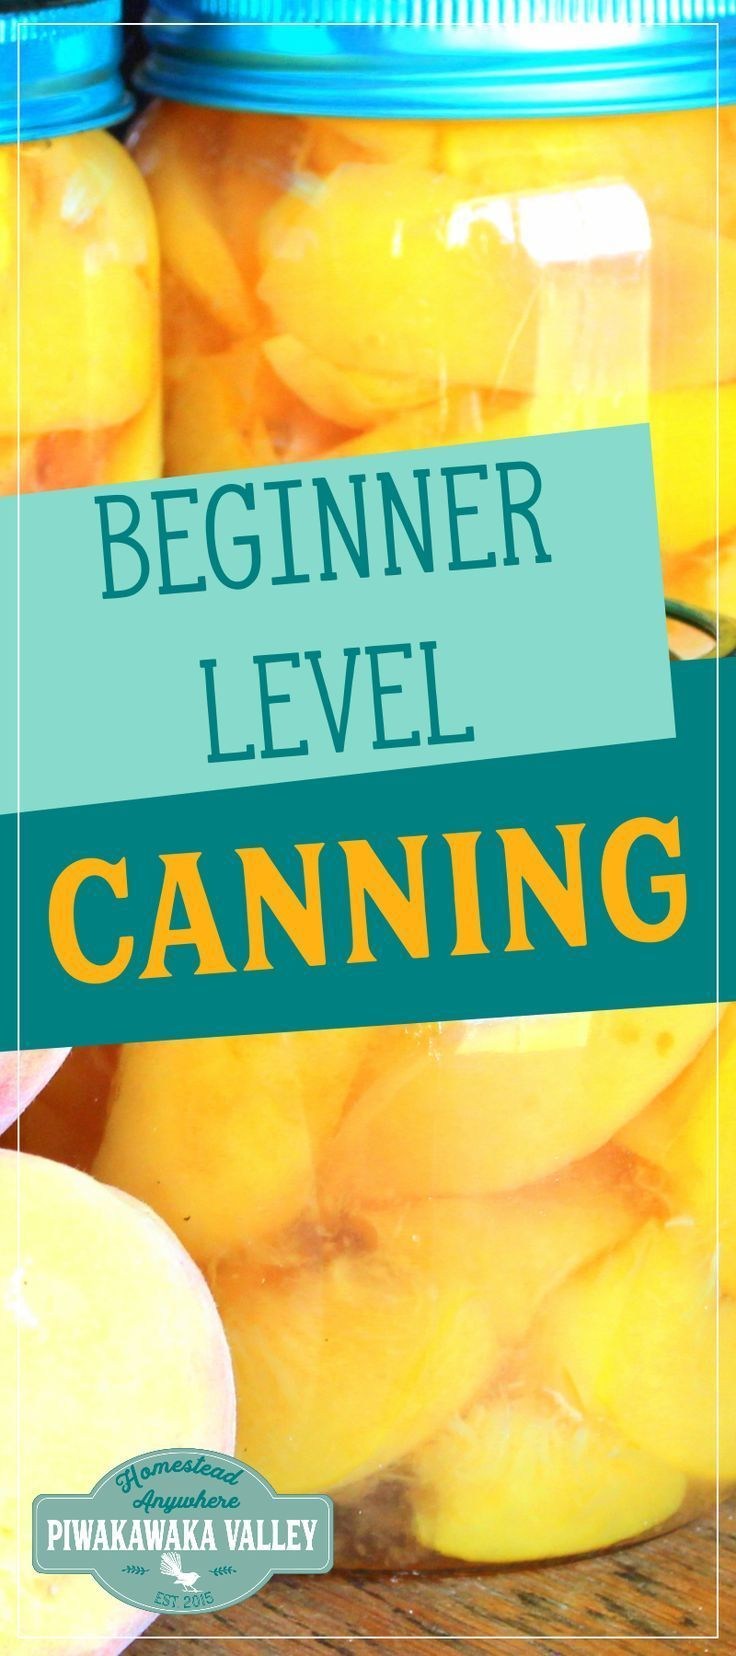 Beginner Overflow canning method for preserving stone fruit - this includes peaches, plums and apricots. Preserving, canning, pressure canning, pickles, freezing, storage, keeping food, jam, chutney, canning for beginners, canning recipes, canning recipes for tomatoes, water bath, ketchup, pressure canning, canning meat, food, simple canning recipes for beginners, gluten free, preserving food, homestead survival, preserving food from the garden, live from the pantry, self sufficiency…